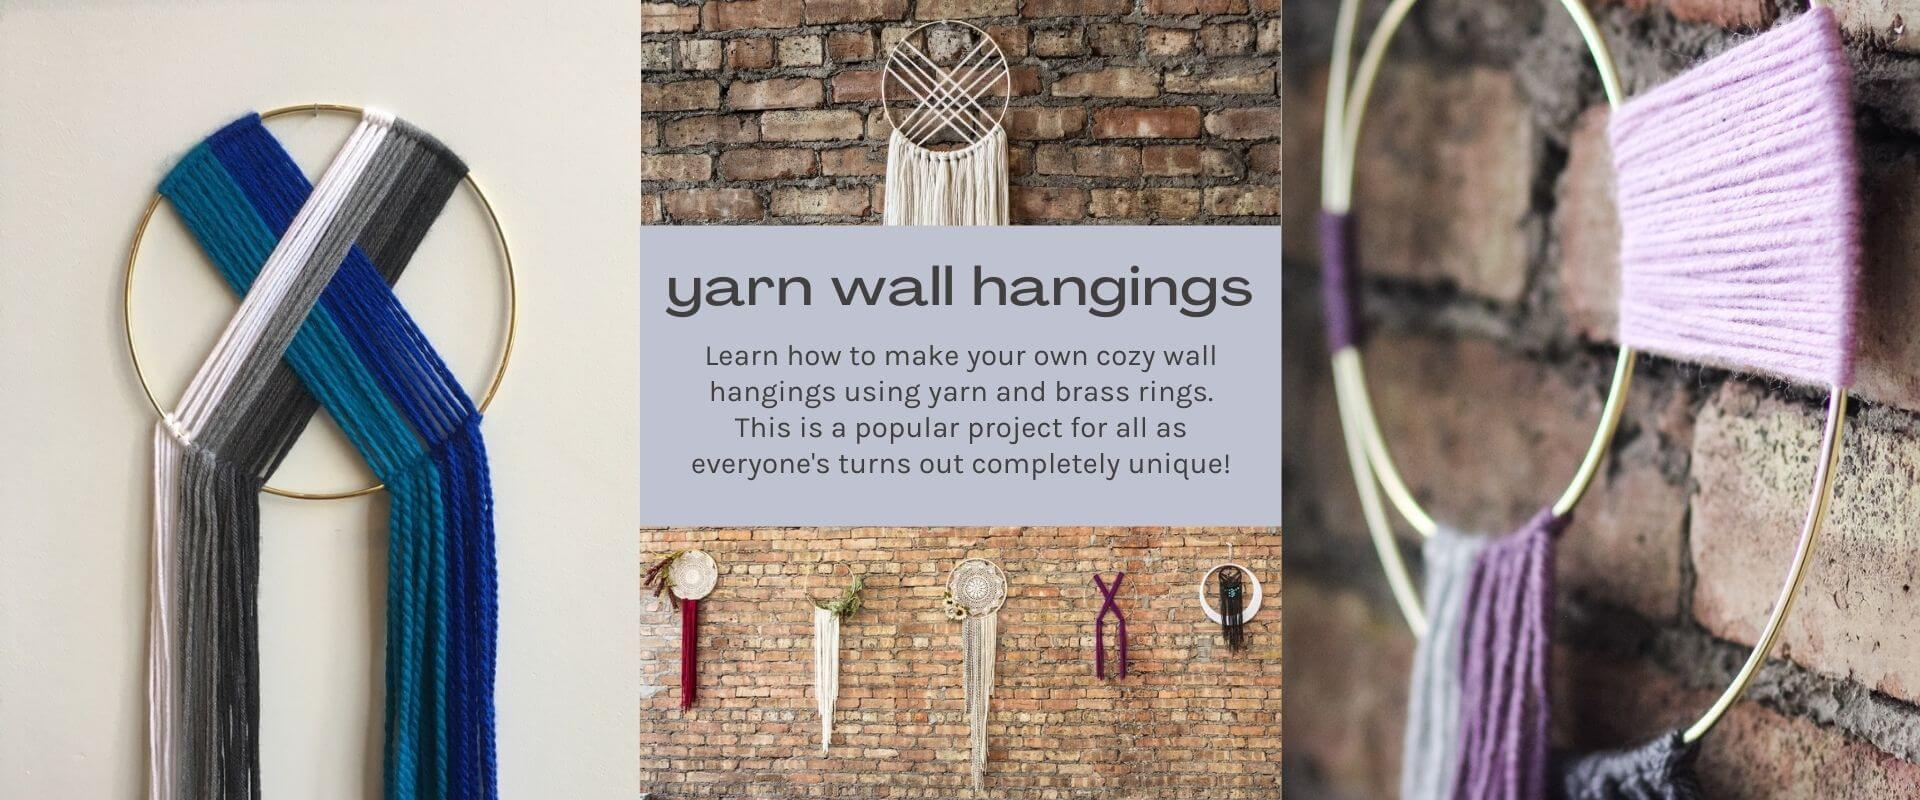 text-yarn wall hanging -images-brass rings with yarn on brick wall